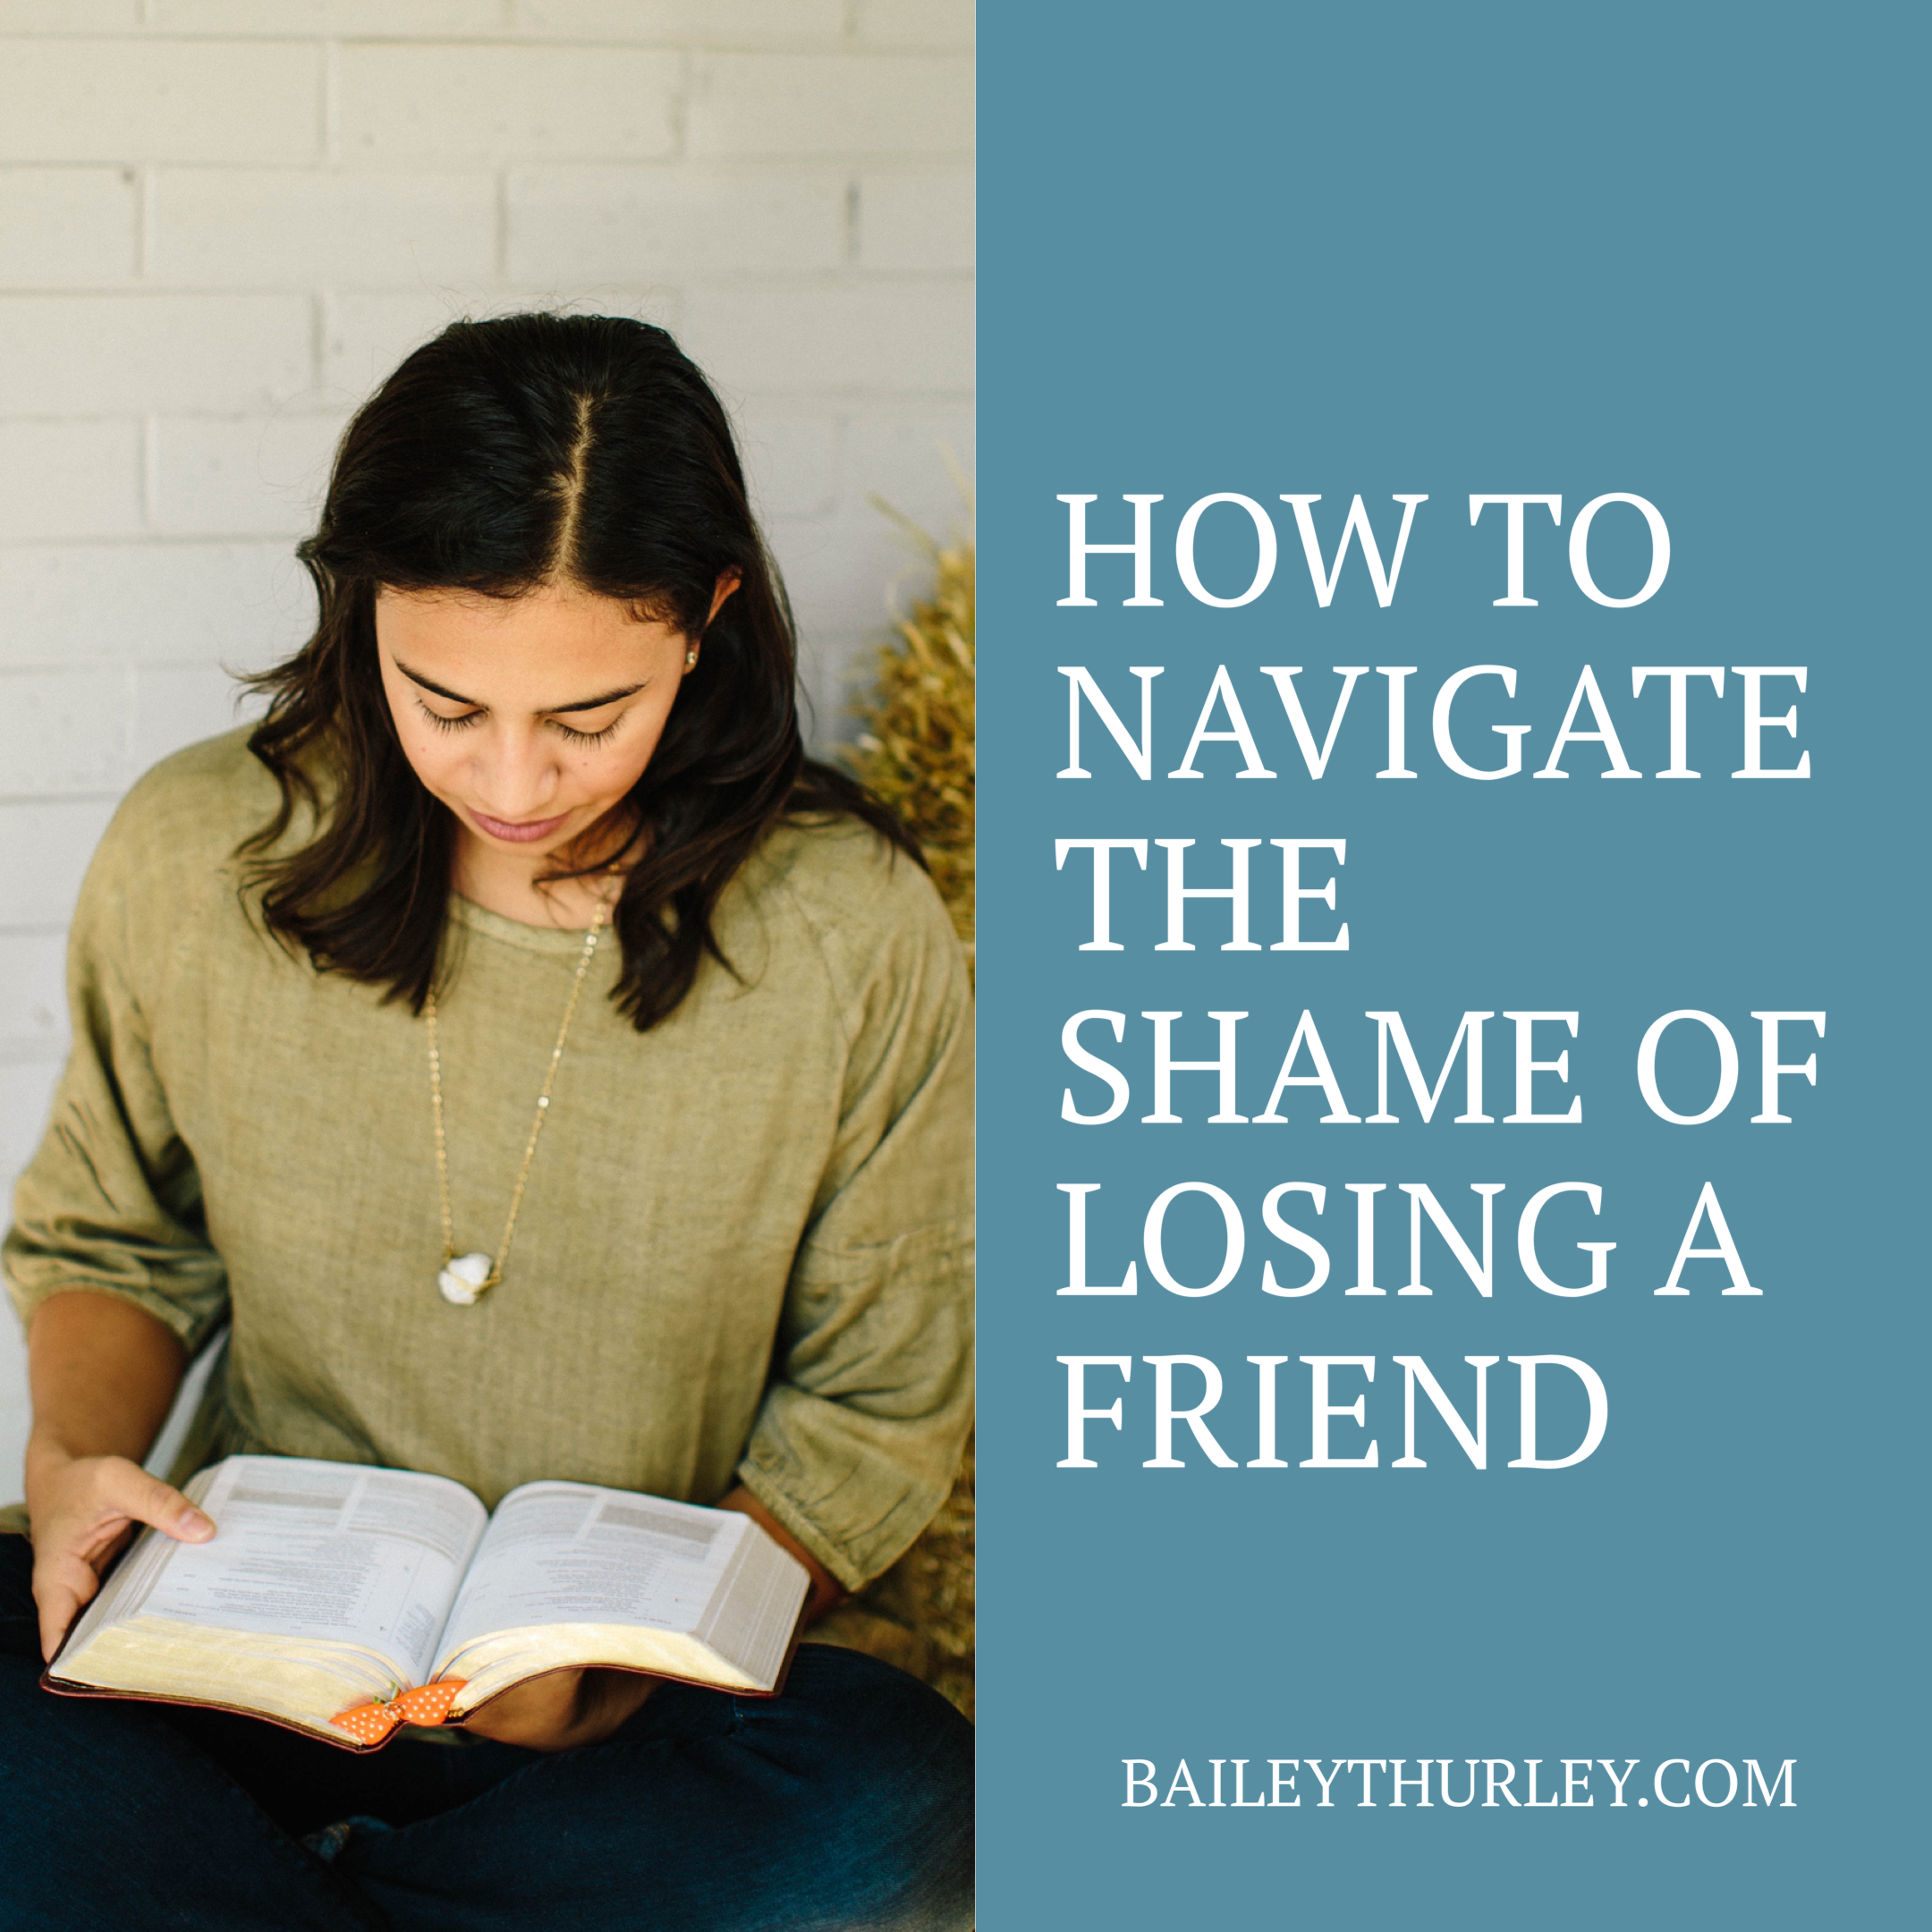 How to navigate the shame of losing a friend